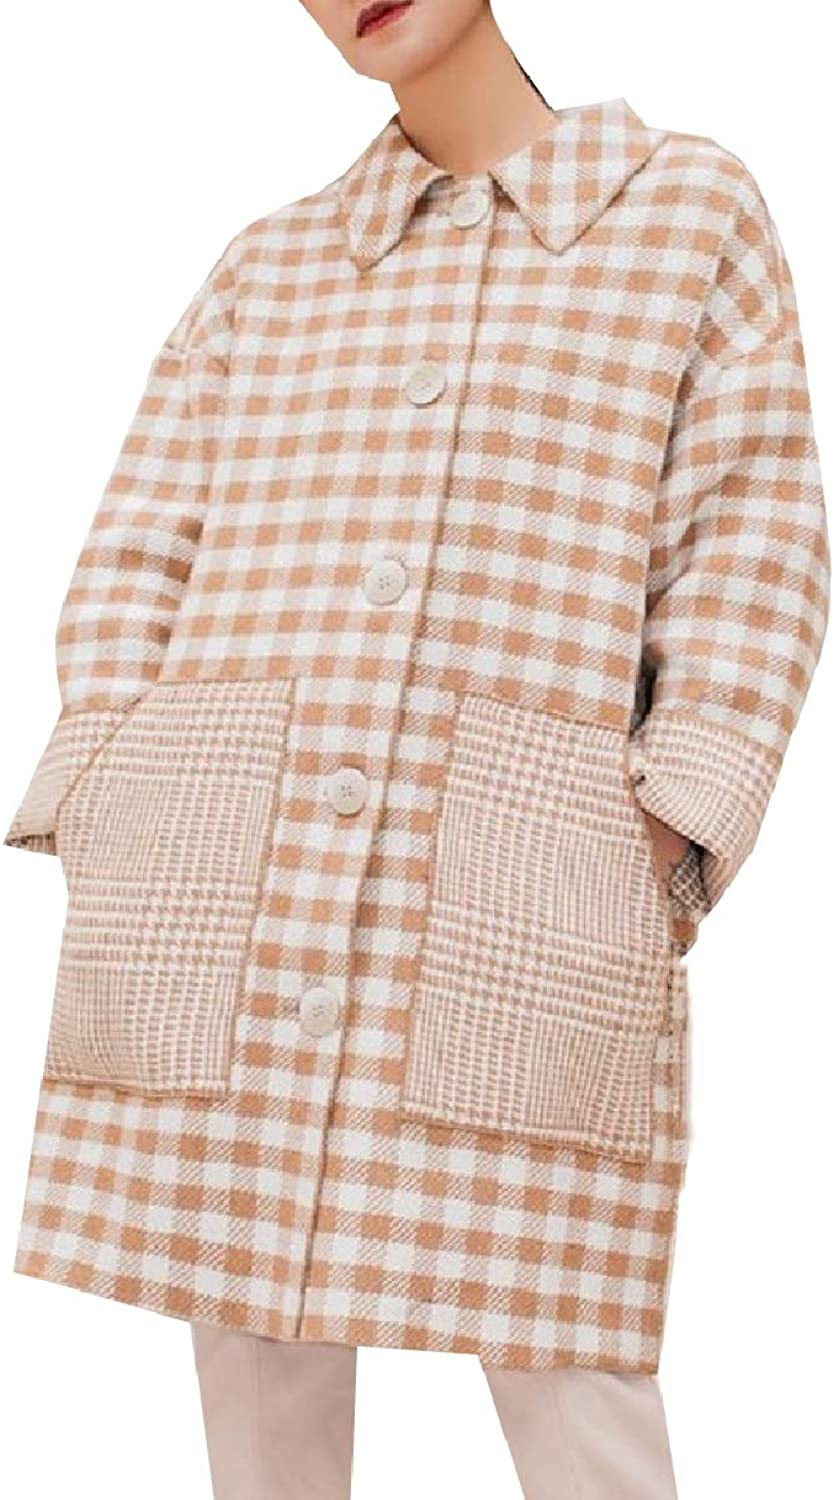 Baseby Women Single Button Plaid Wool Vintage Trench Pea Coat Outwear